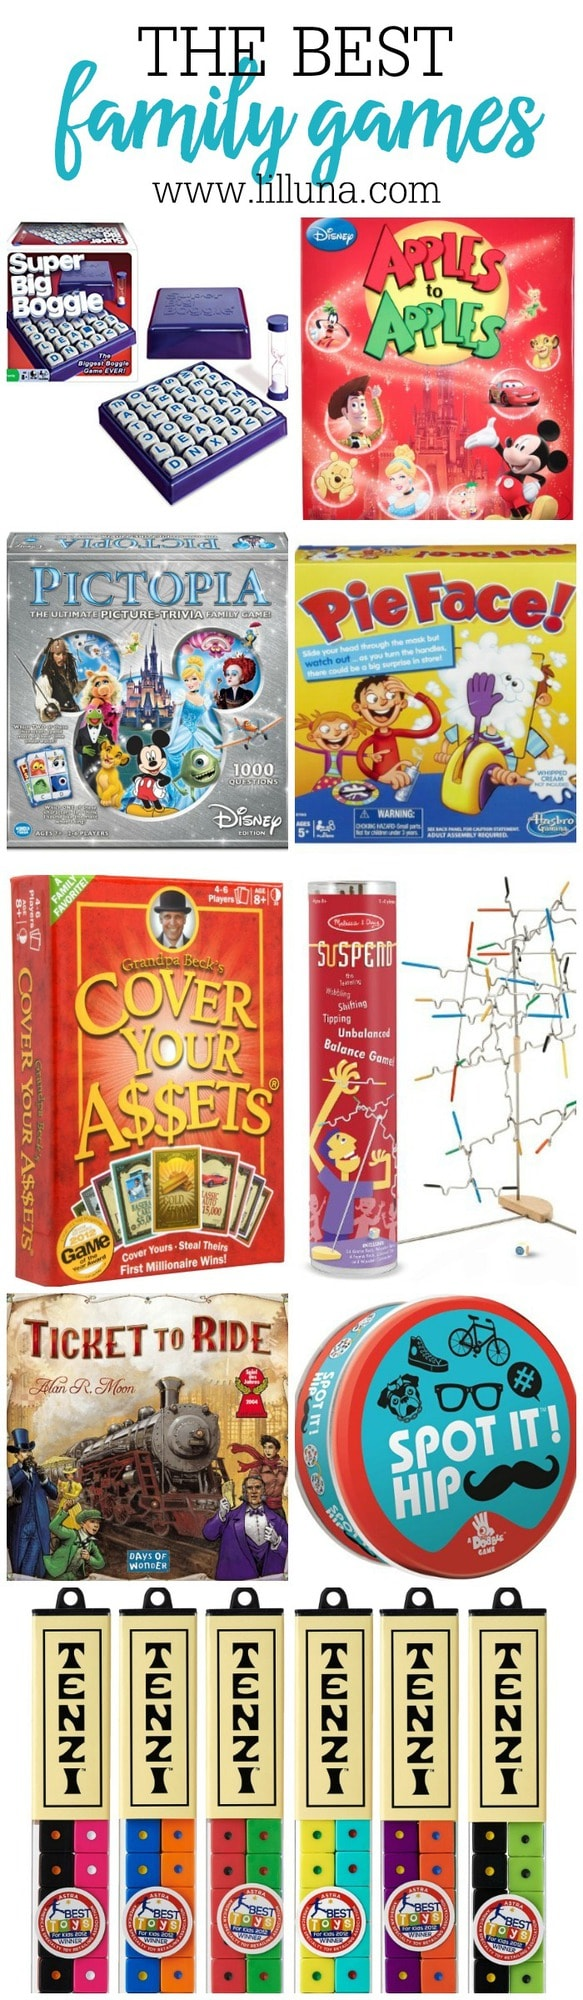 A collection of some of the BEST Family Games to collect and play with your family. They make great gift ideas too and provide hours of fun!!